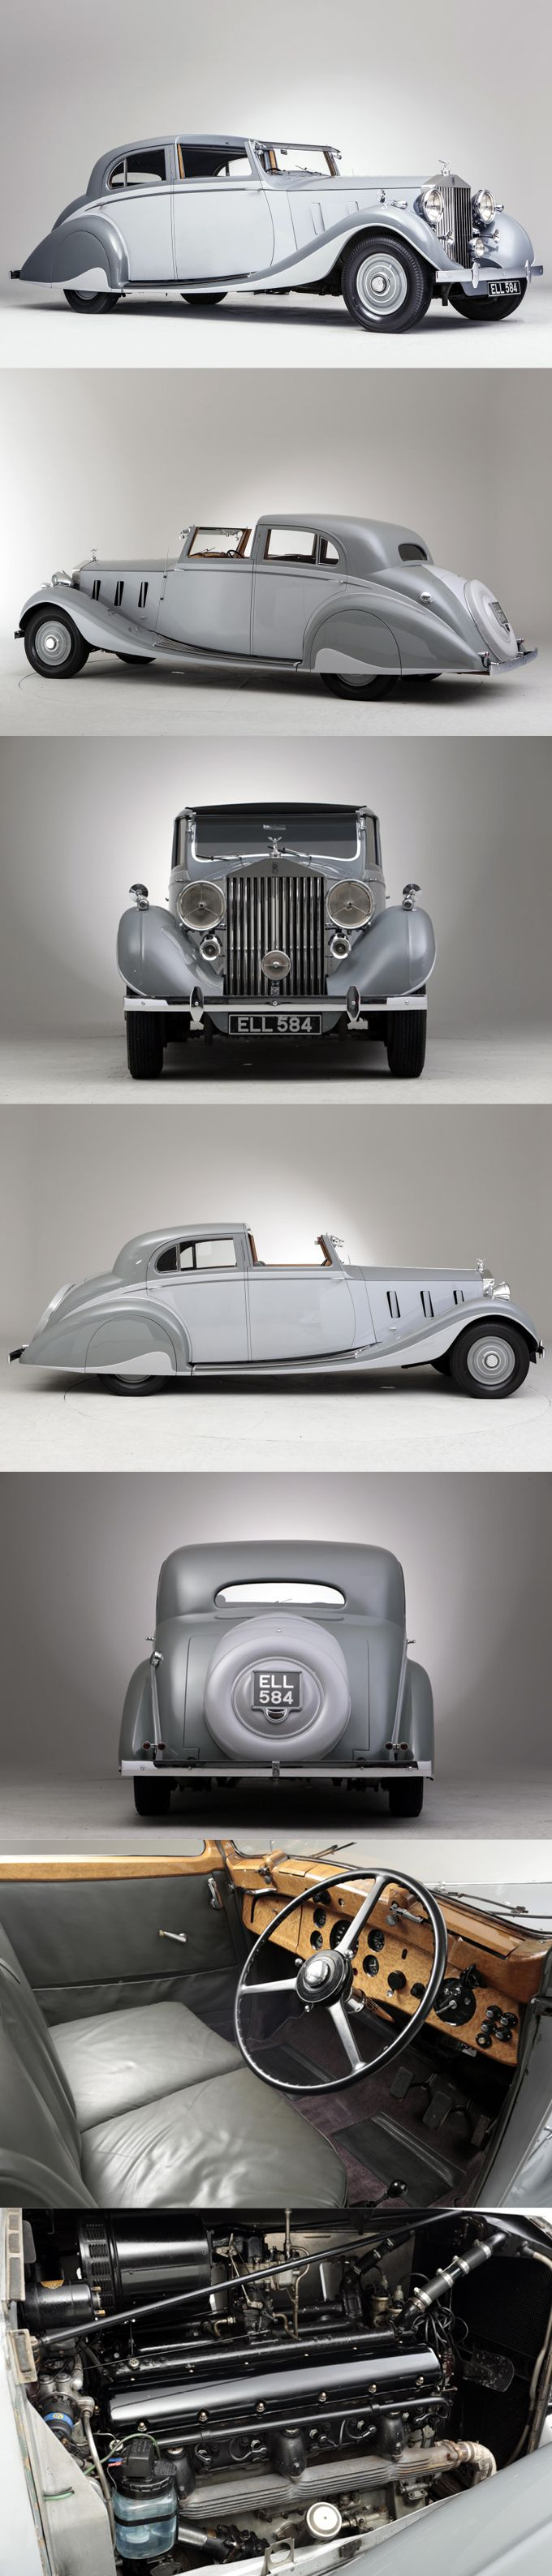 1937 Rolls-Royce Phantom III Gurney Nutting Sports Sedanca de Ville / UK / grey silver https://www.amazon.co.uk/Baby-Car-Mirror-Shatterproof-Installation/dp/B06XHG6SSY/ref=sr_1_2?ie=UTF8&qid=1499074433&sr=8-2&keywords=Kingseye